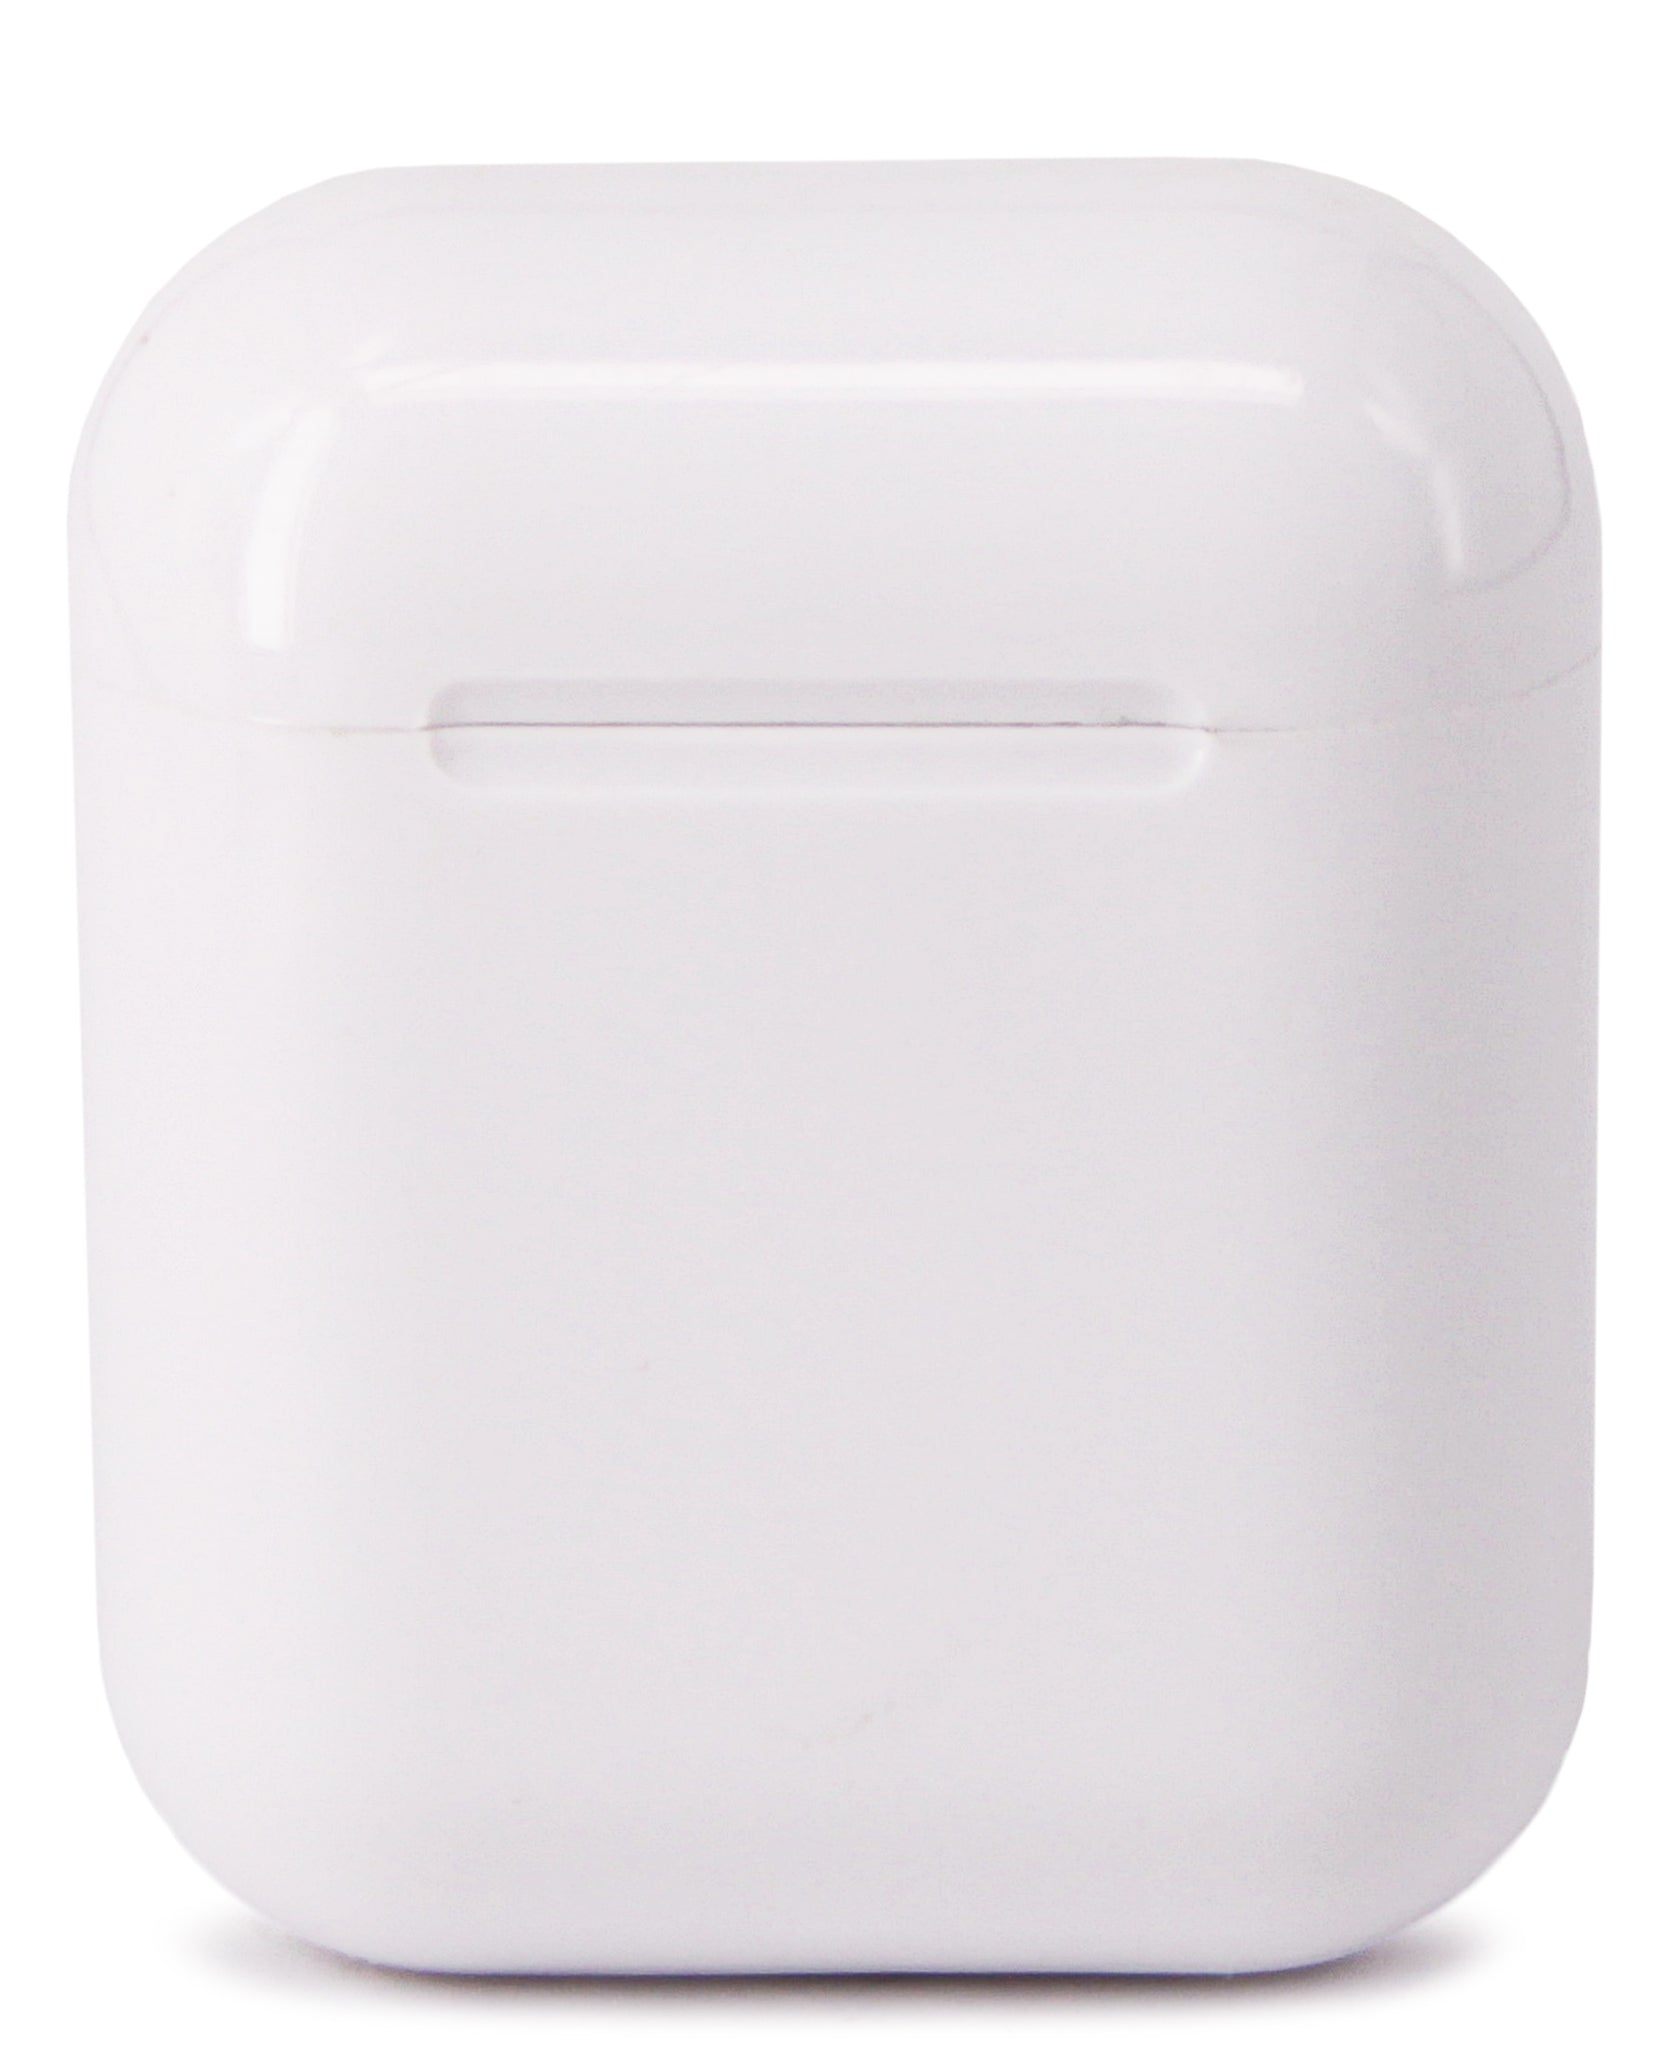 Airpods with Charging Case - White